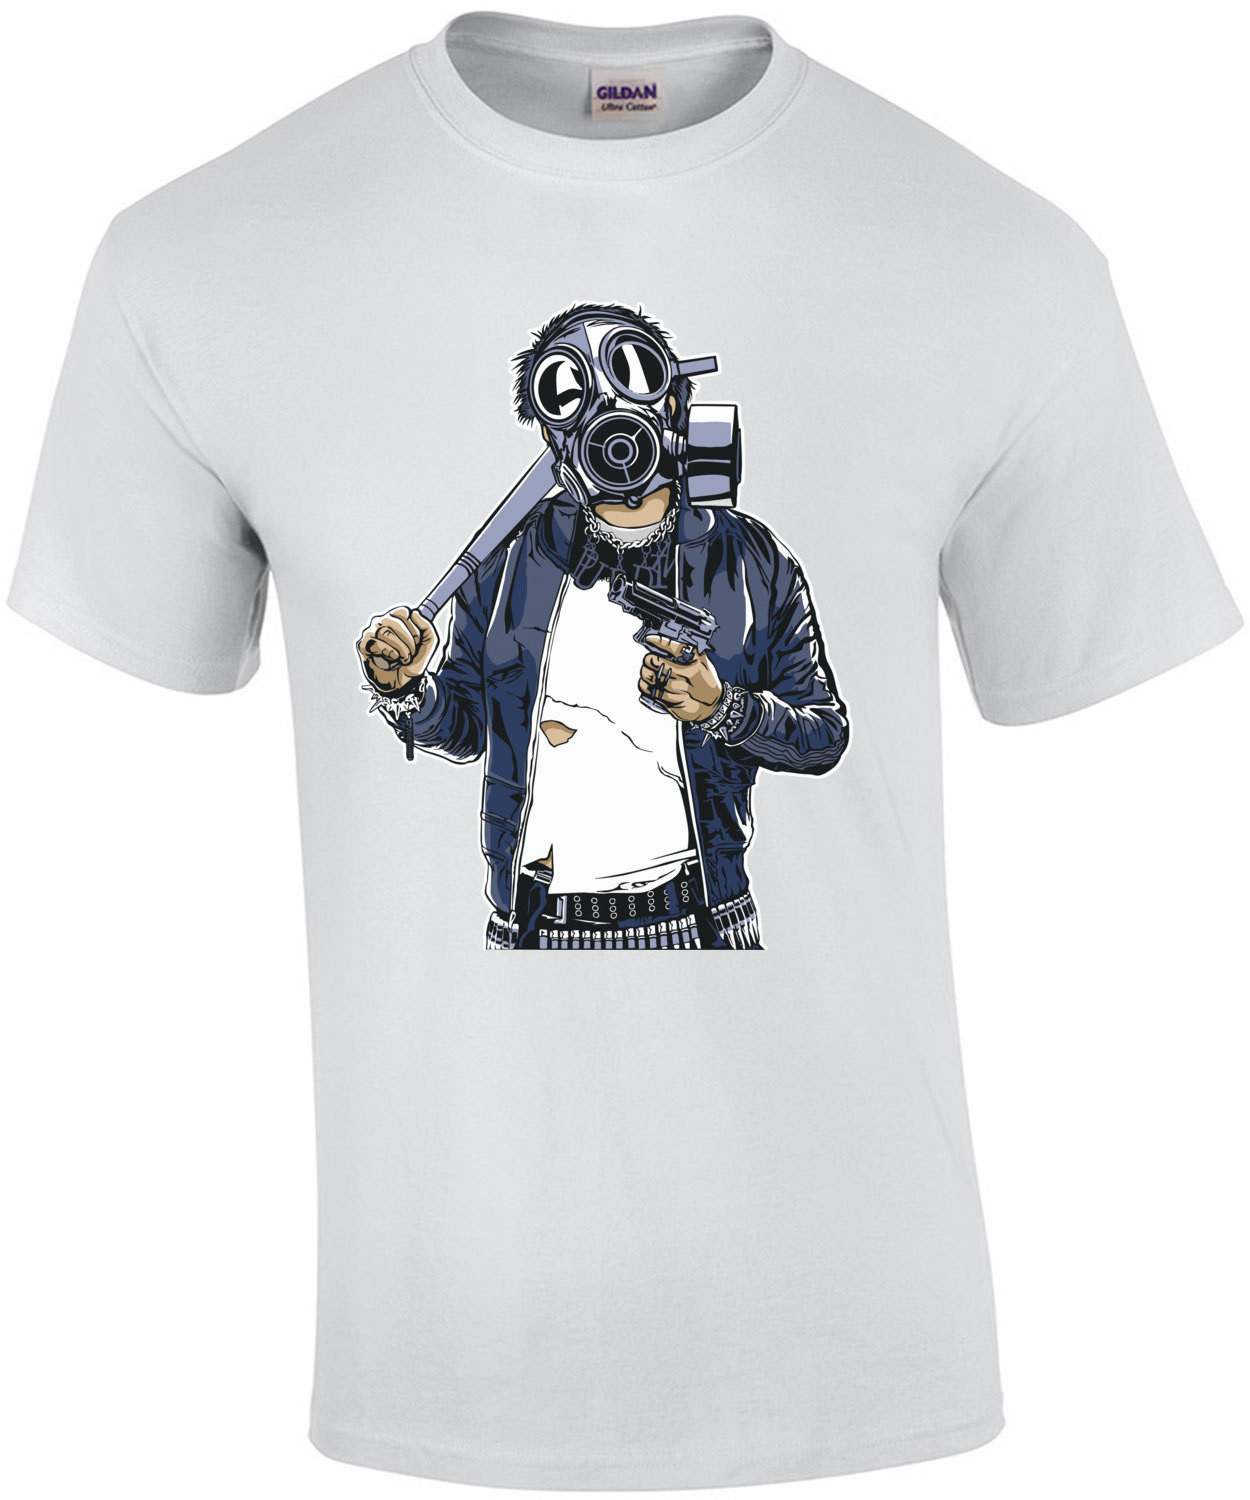 Apocalyptic Soldier Wearing Gas Mask T-Shirt